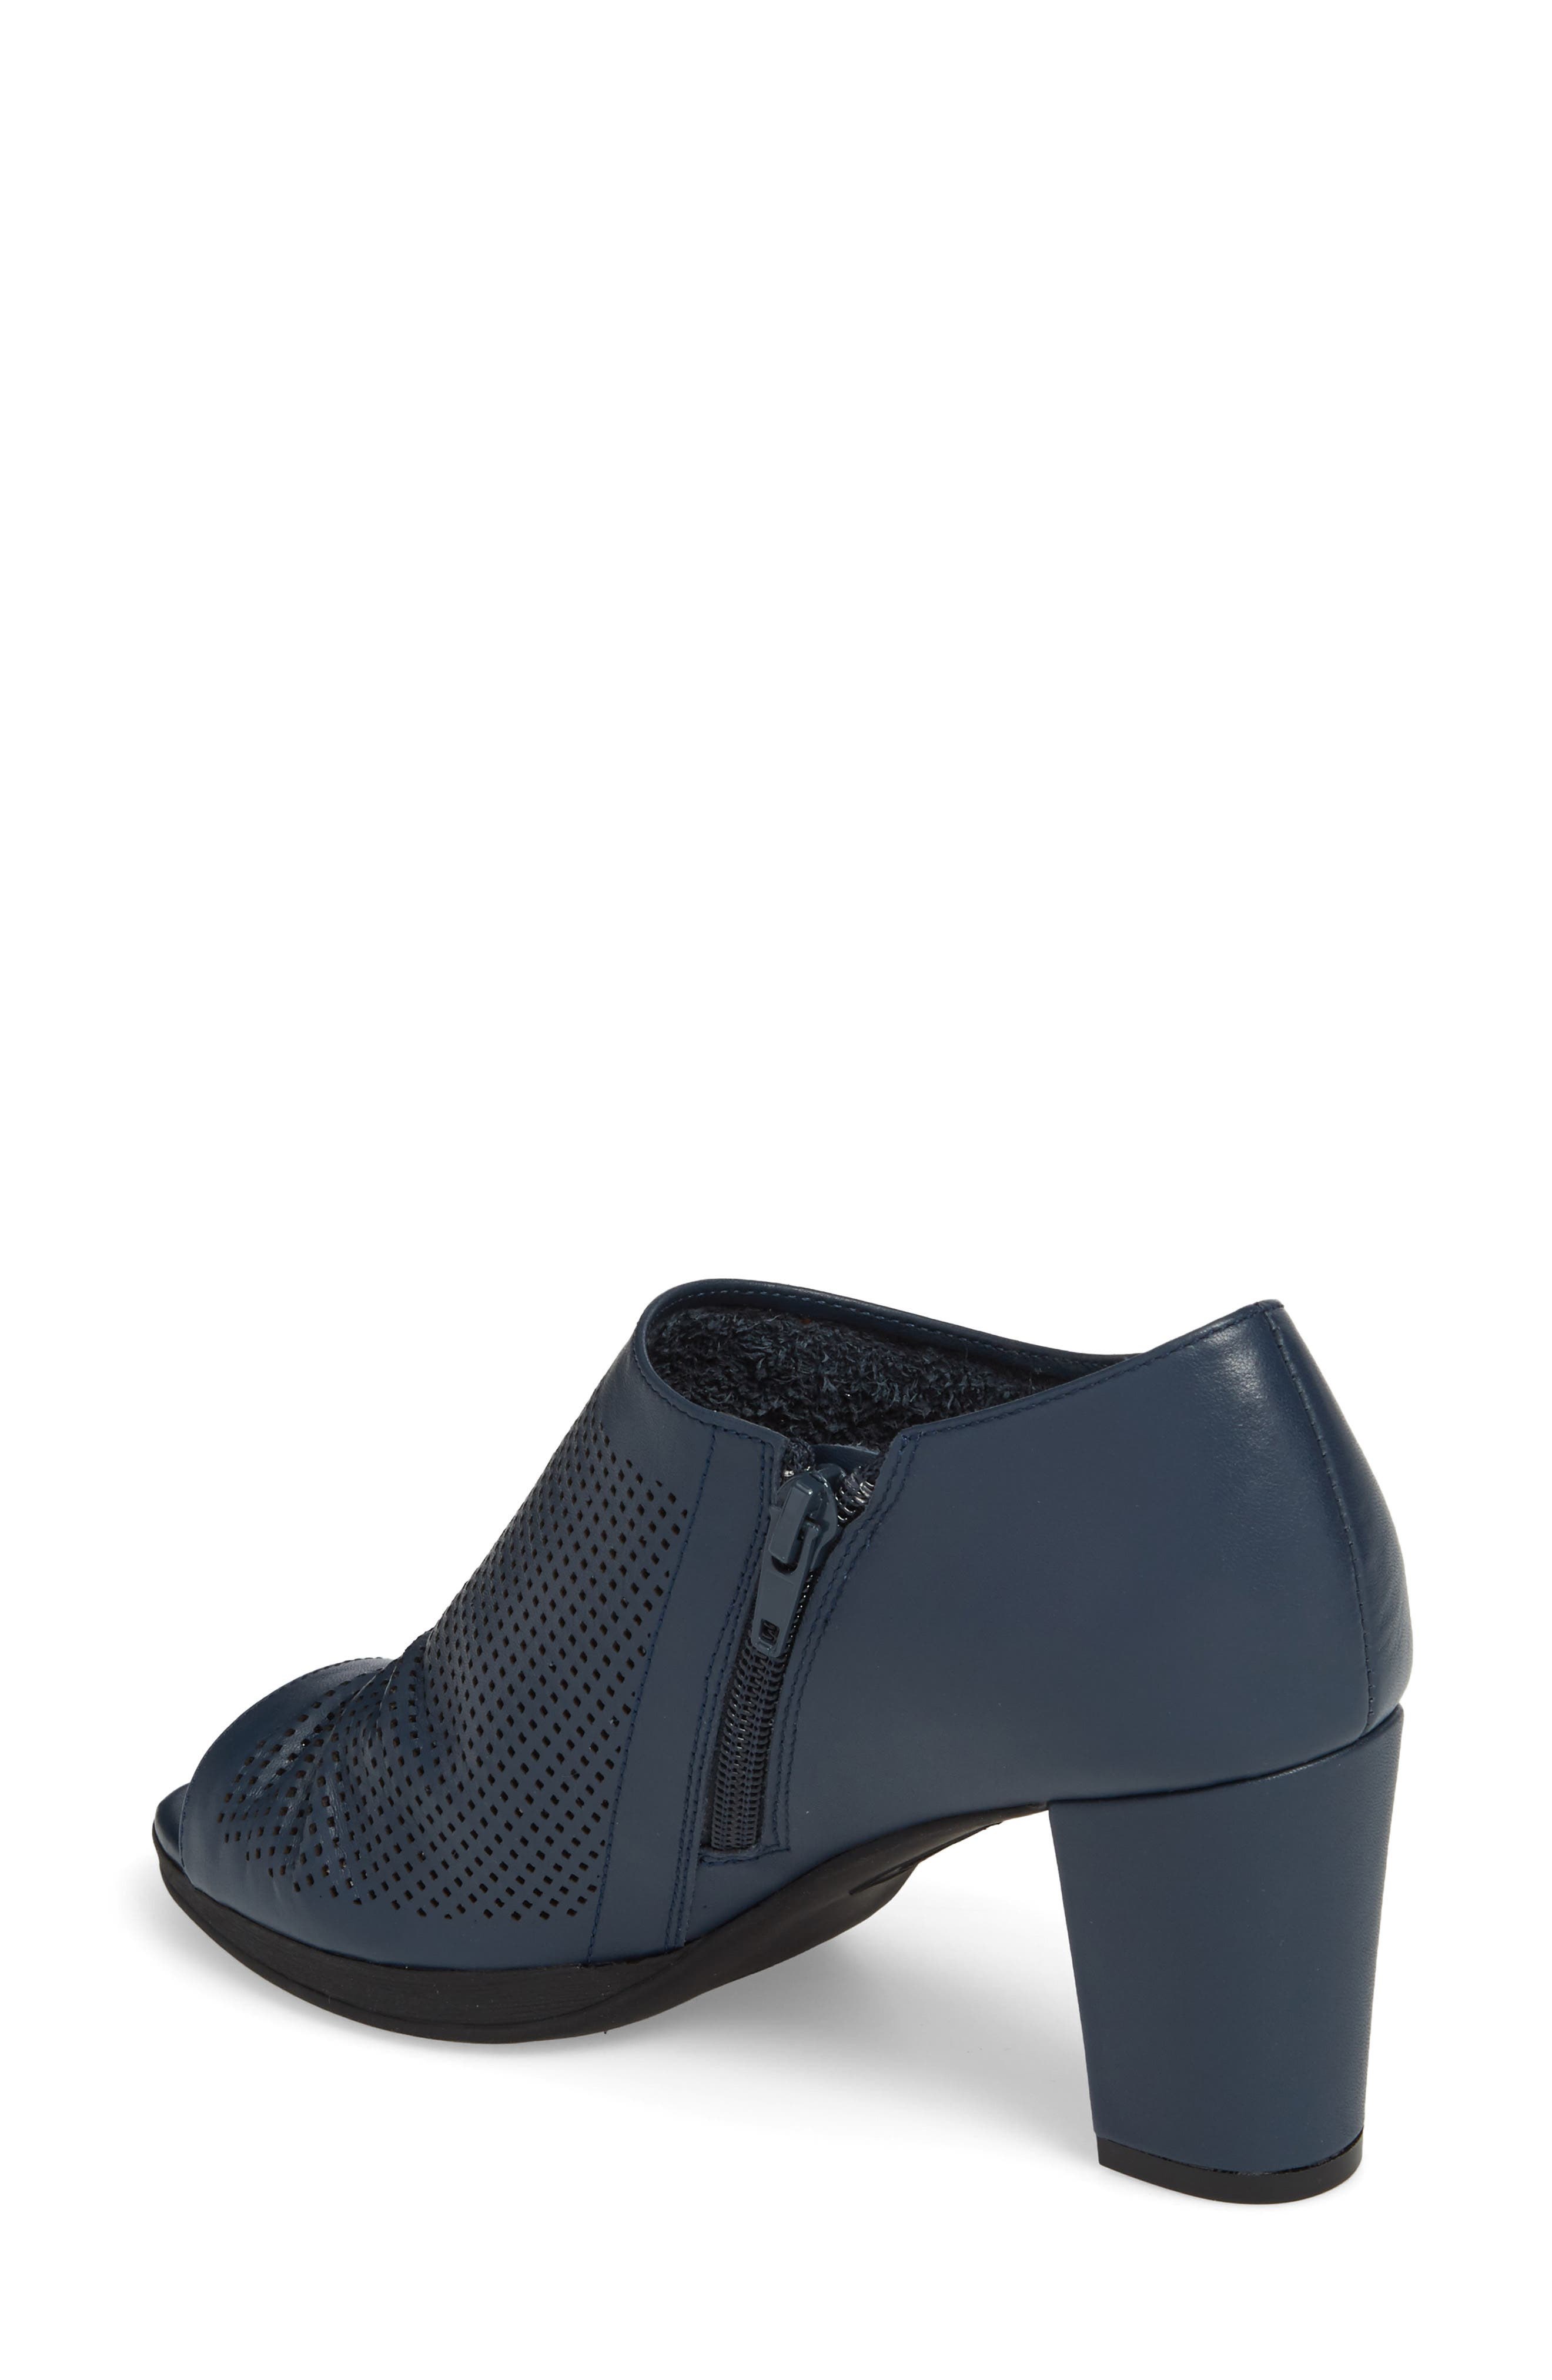 Liza Open Toe Bootie,                             Alternate thumbnail 2, color,                             Navy Leather